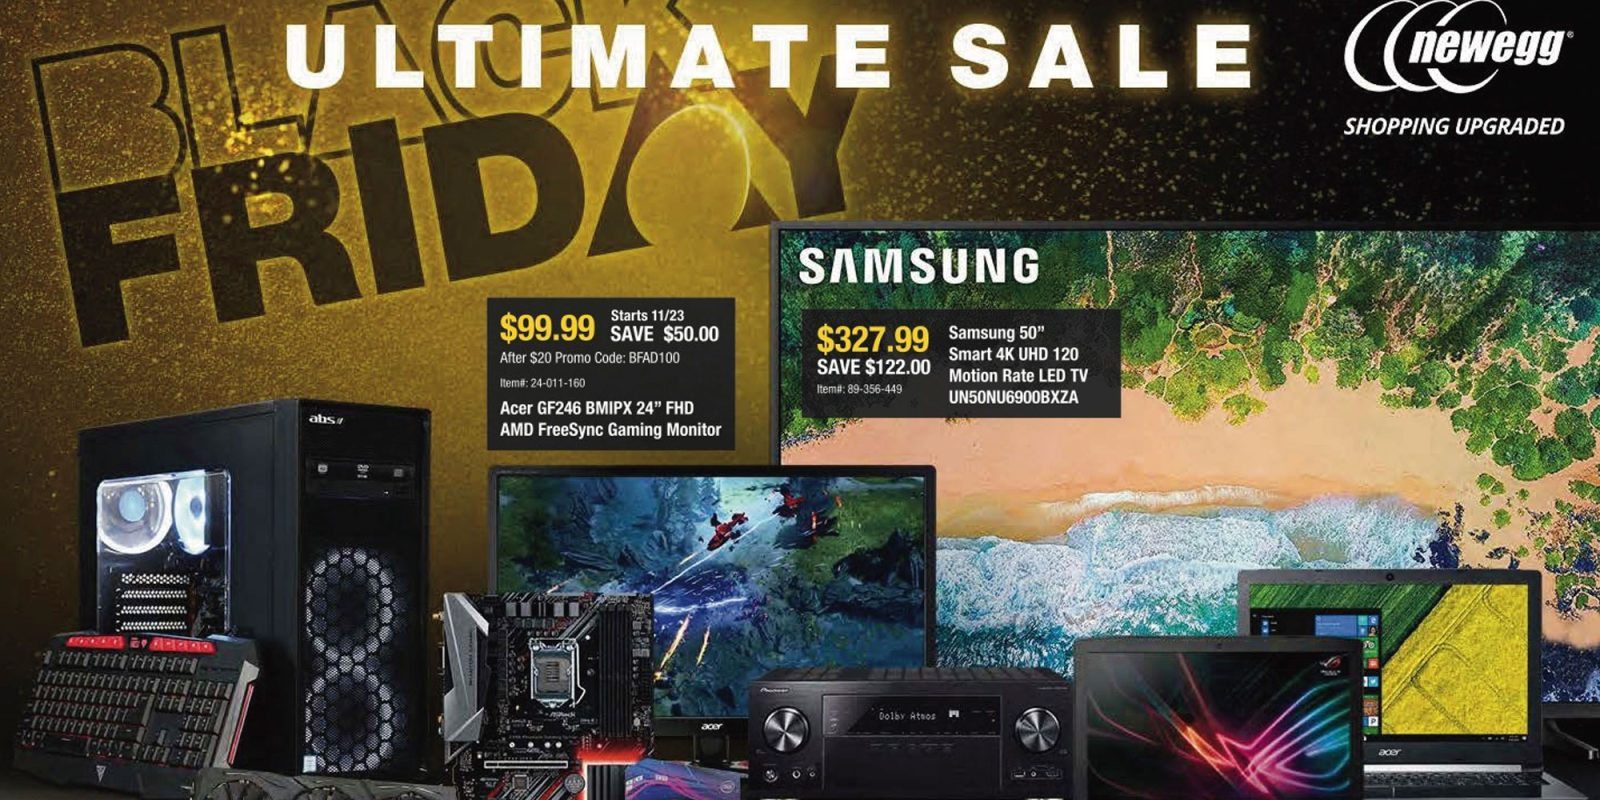 c016c91fd5b Newegg Black Friday ad: Xbox One X discounts, computer peripherals, home  theater, more